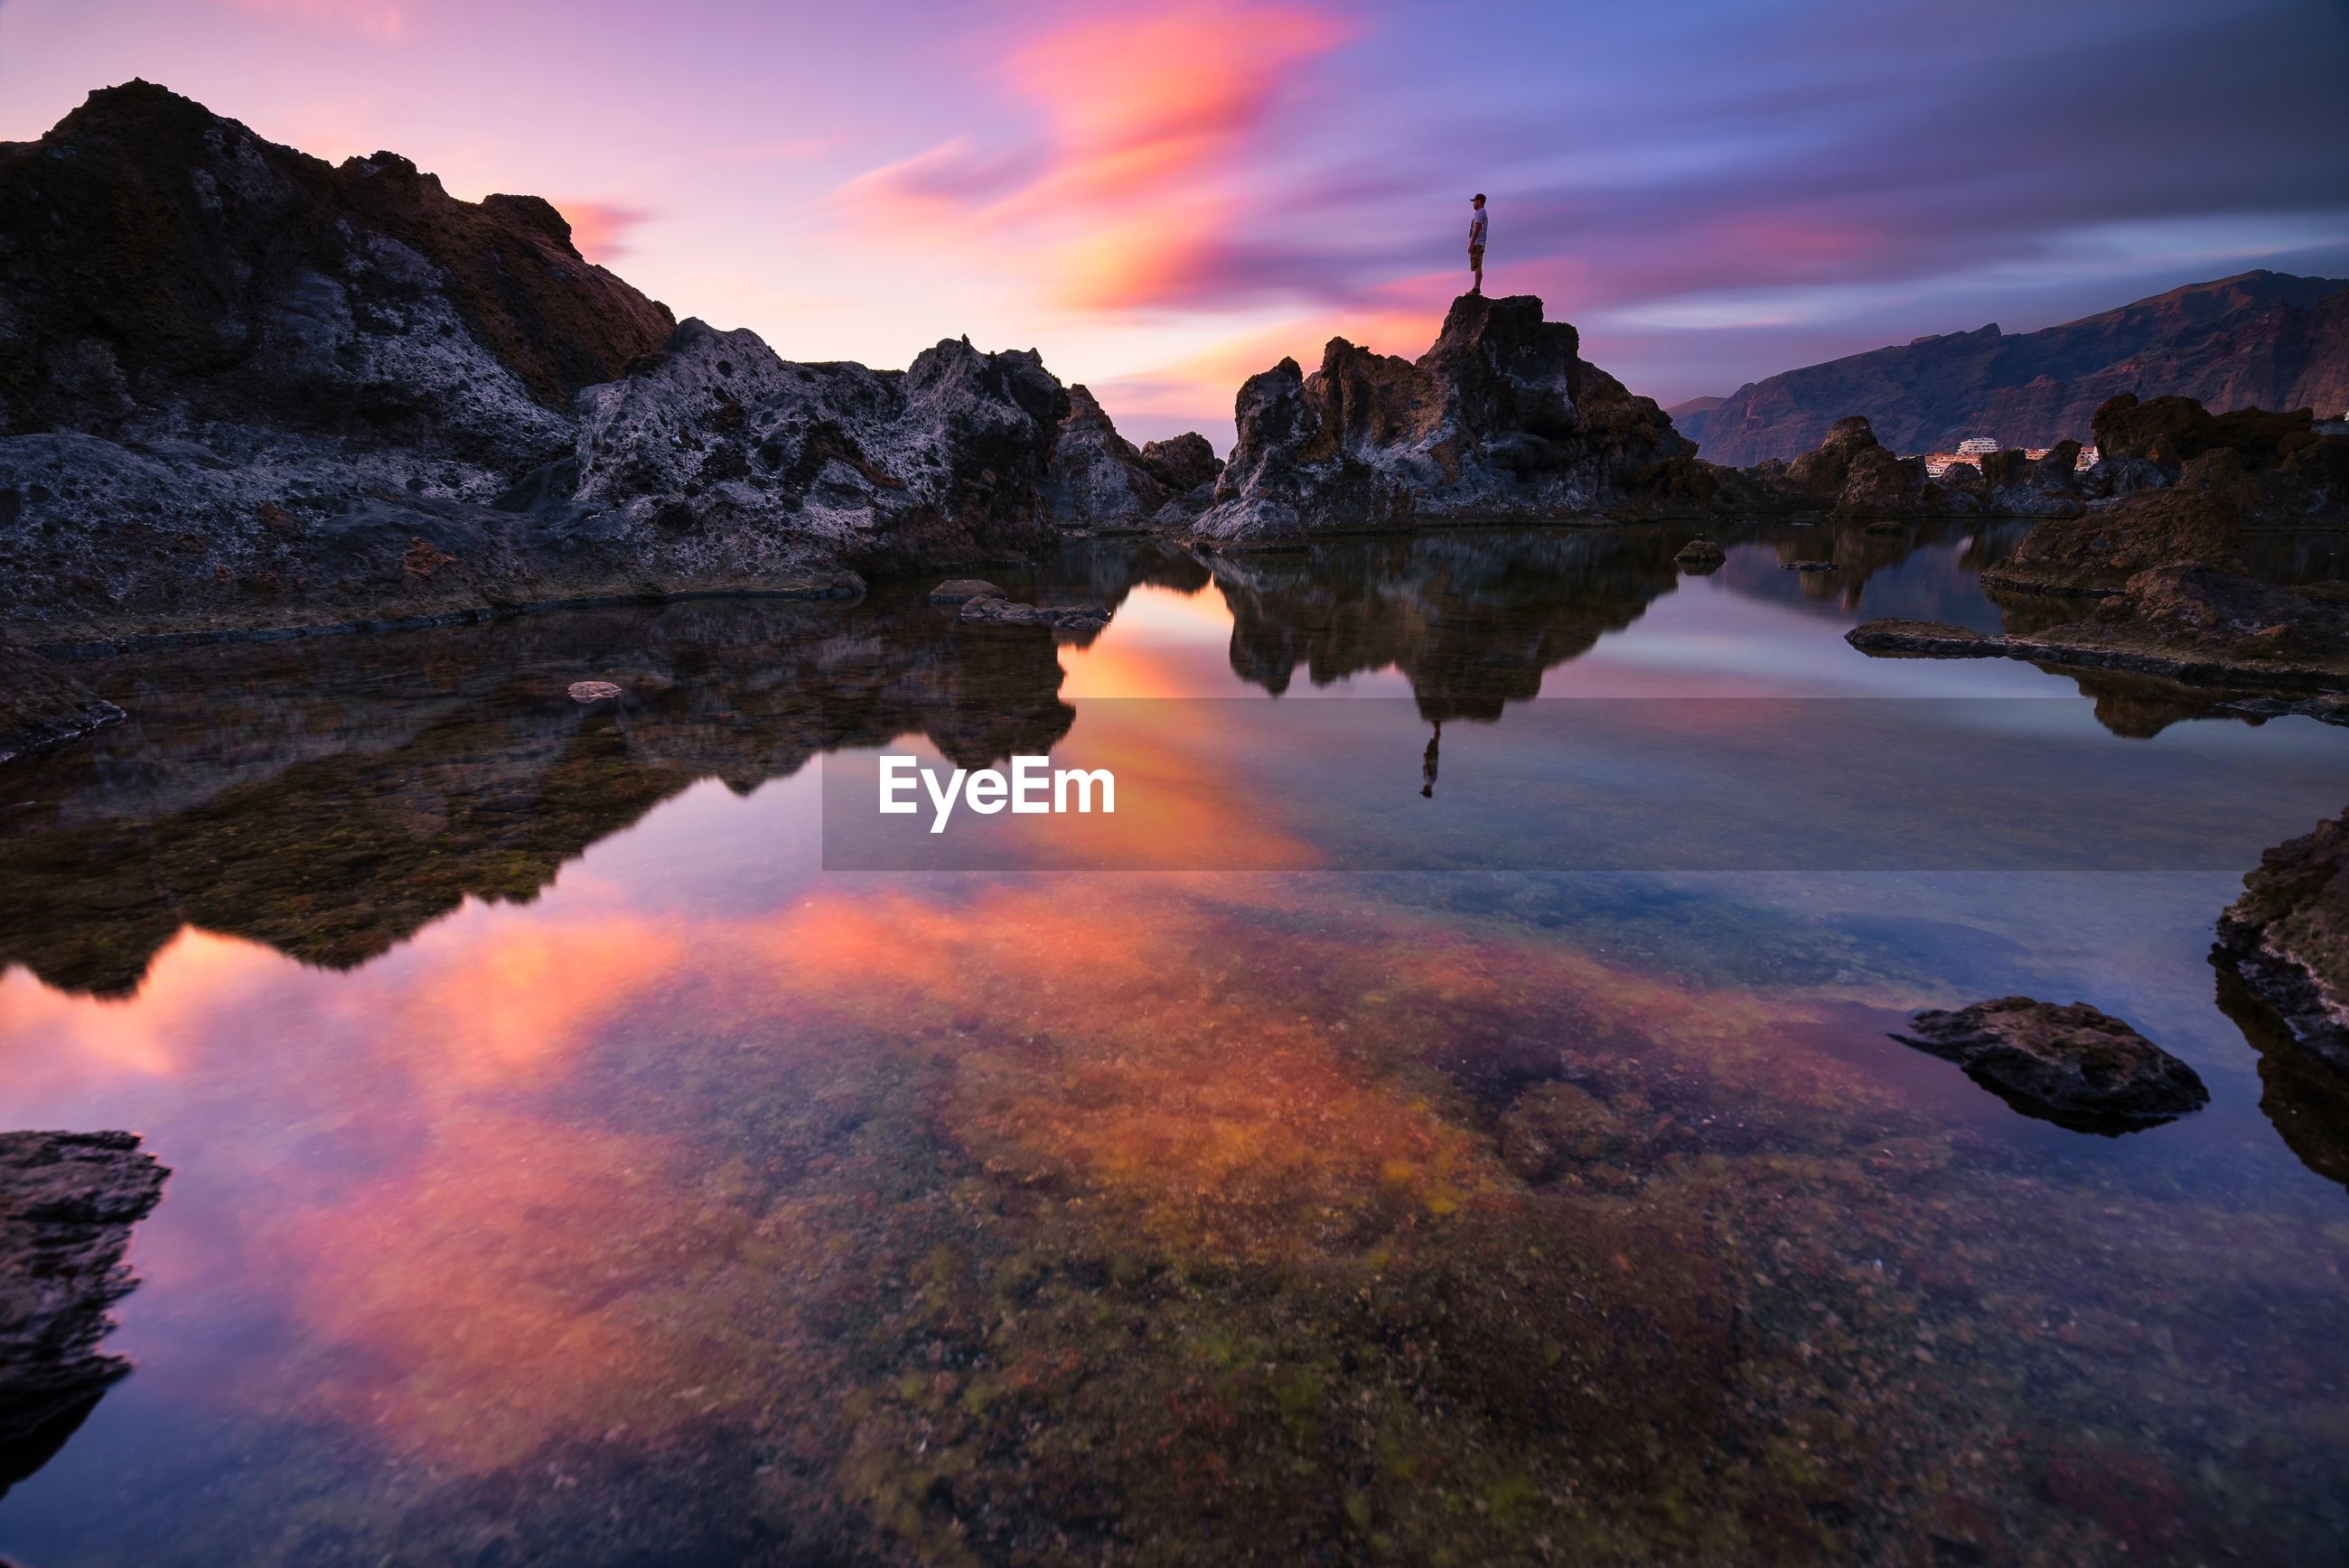 Scenic view of lake by rock formation against sky during sunset